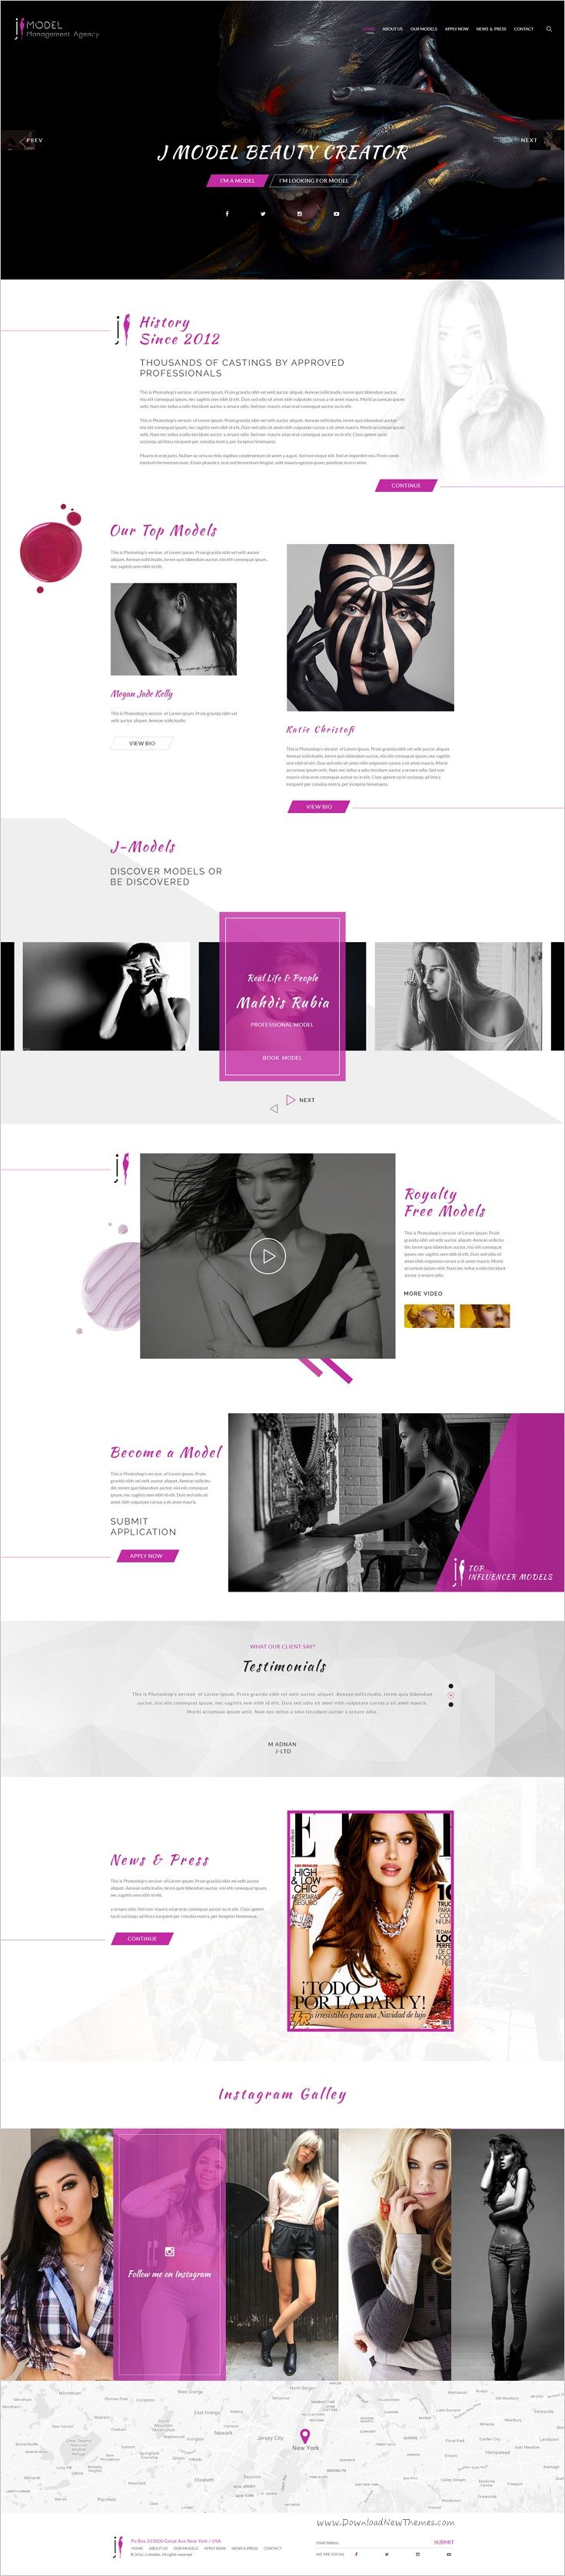 Modal Management #Agency is a clean and modern design #PSD template for #Actors and #models hiring agencies website with 4 unique homepage layouts and 17 organized PSD pages download now➩ https://themeforest.net/item/modal-management-agency/18545541?ref=Datasata